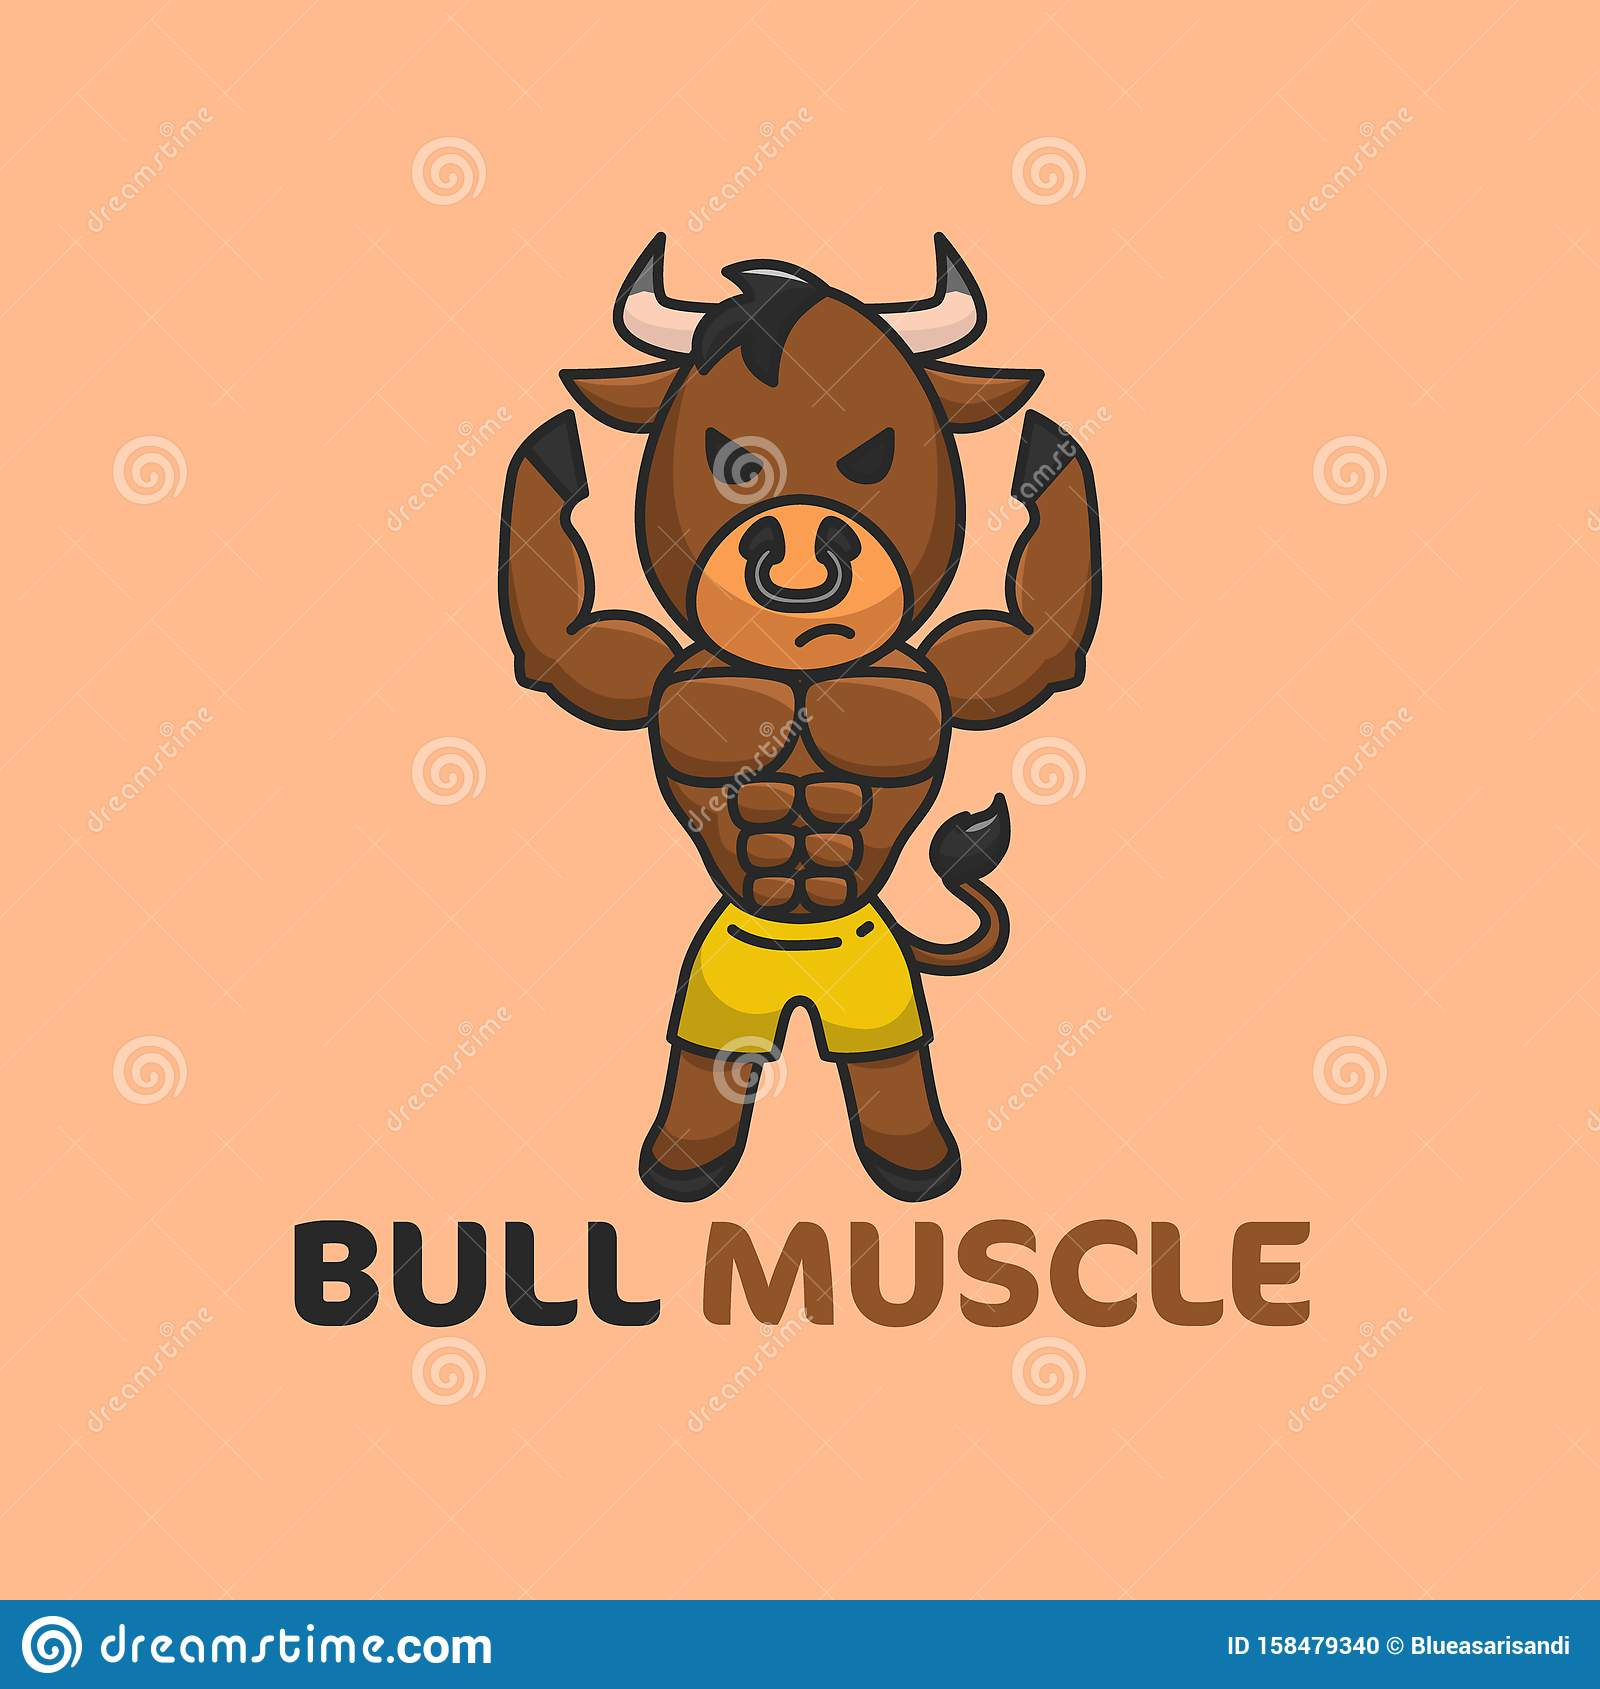 Brown Bull Muscle Illustration good for Gym or fitness Logo Template